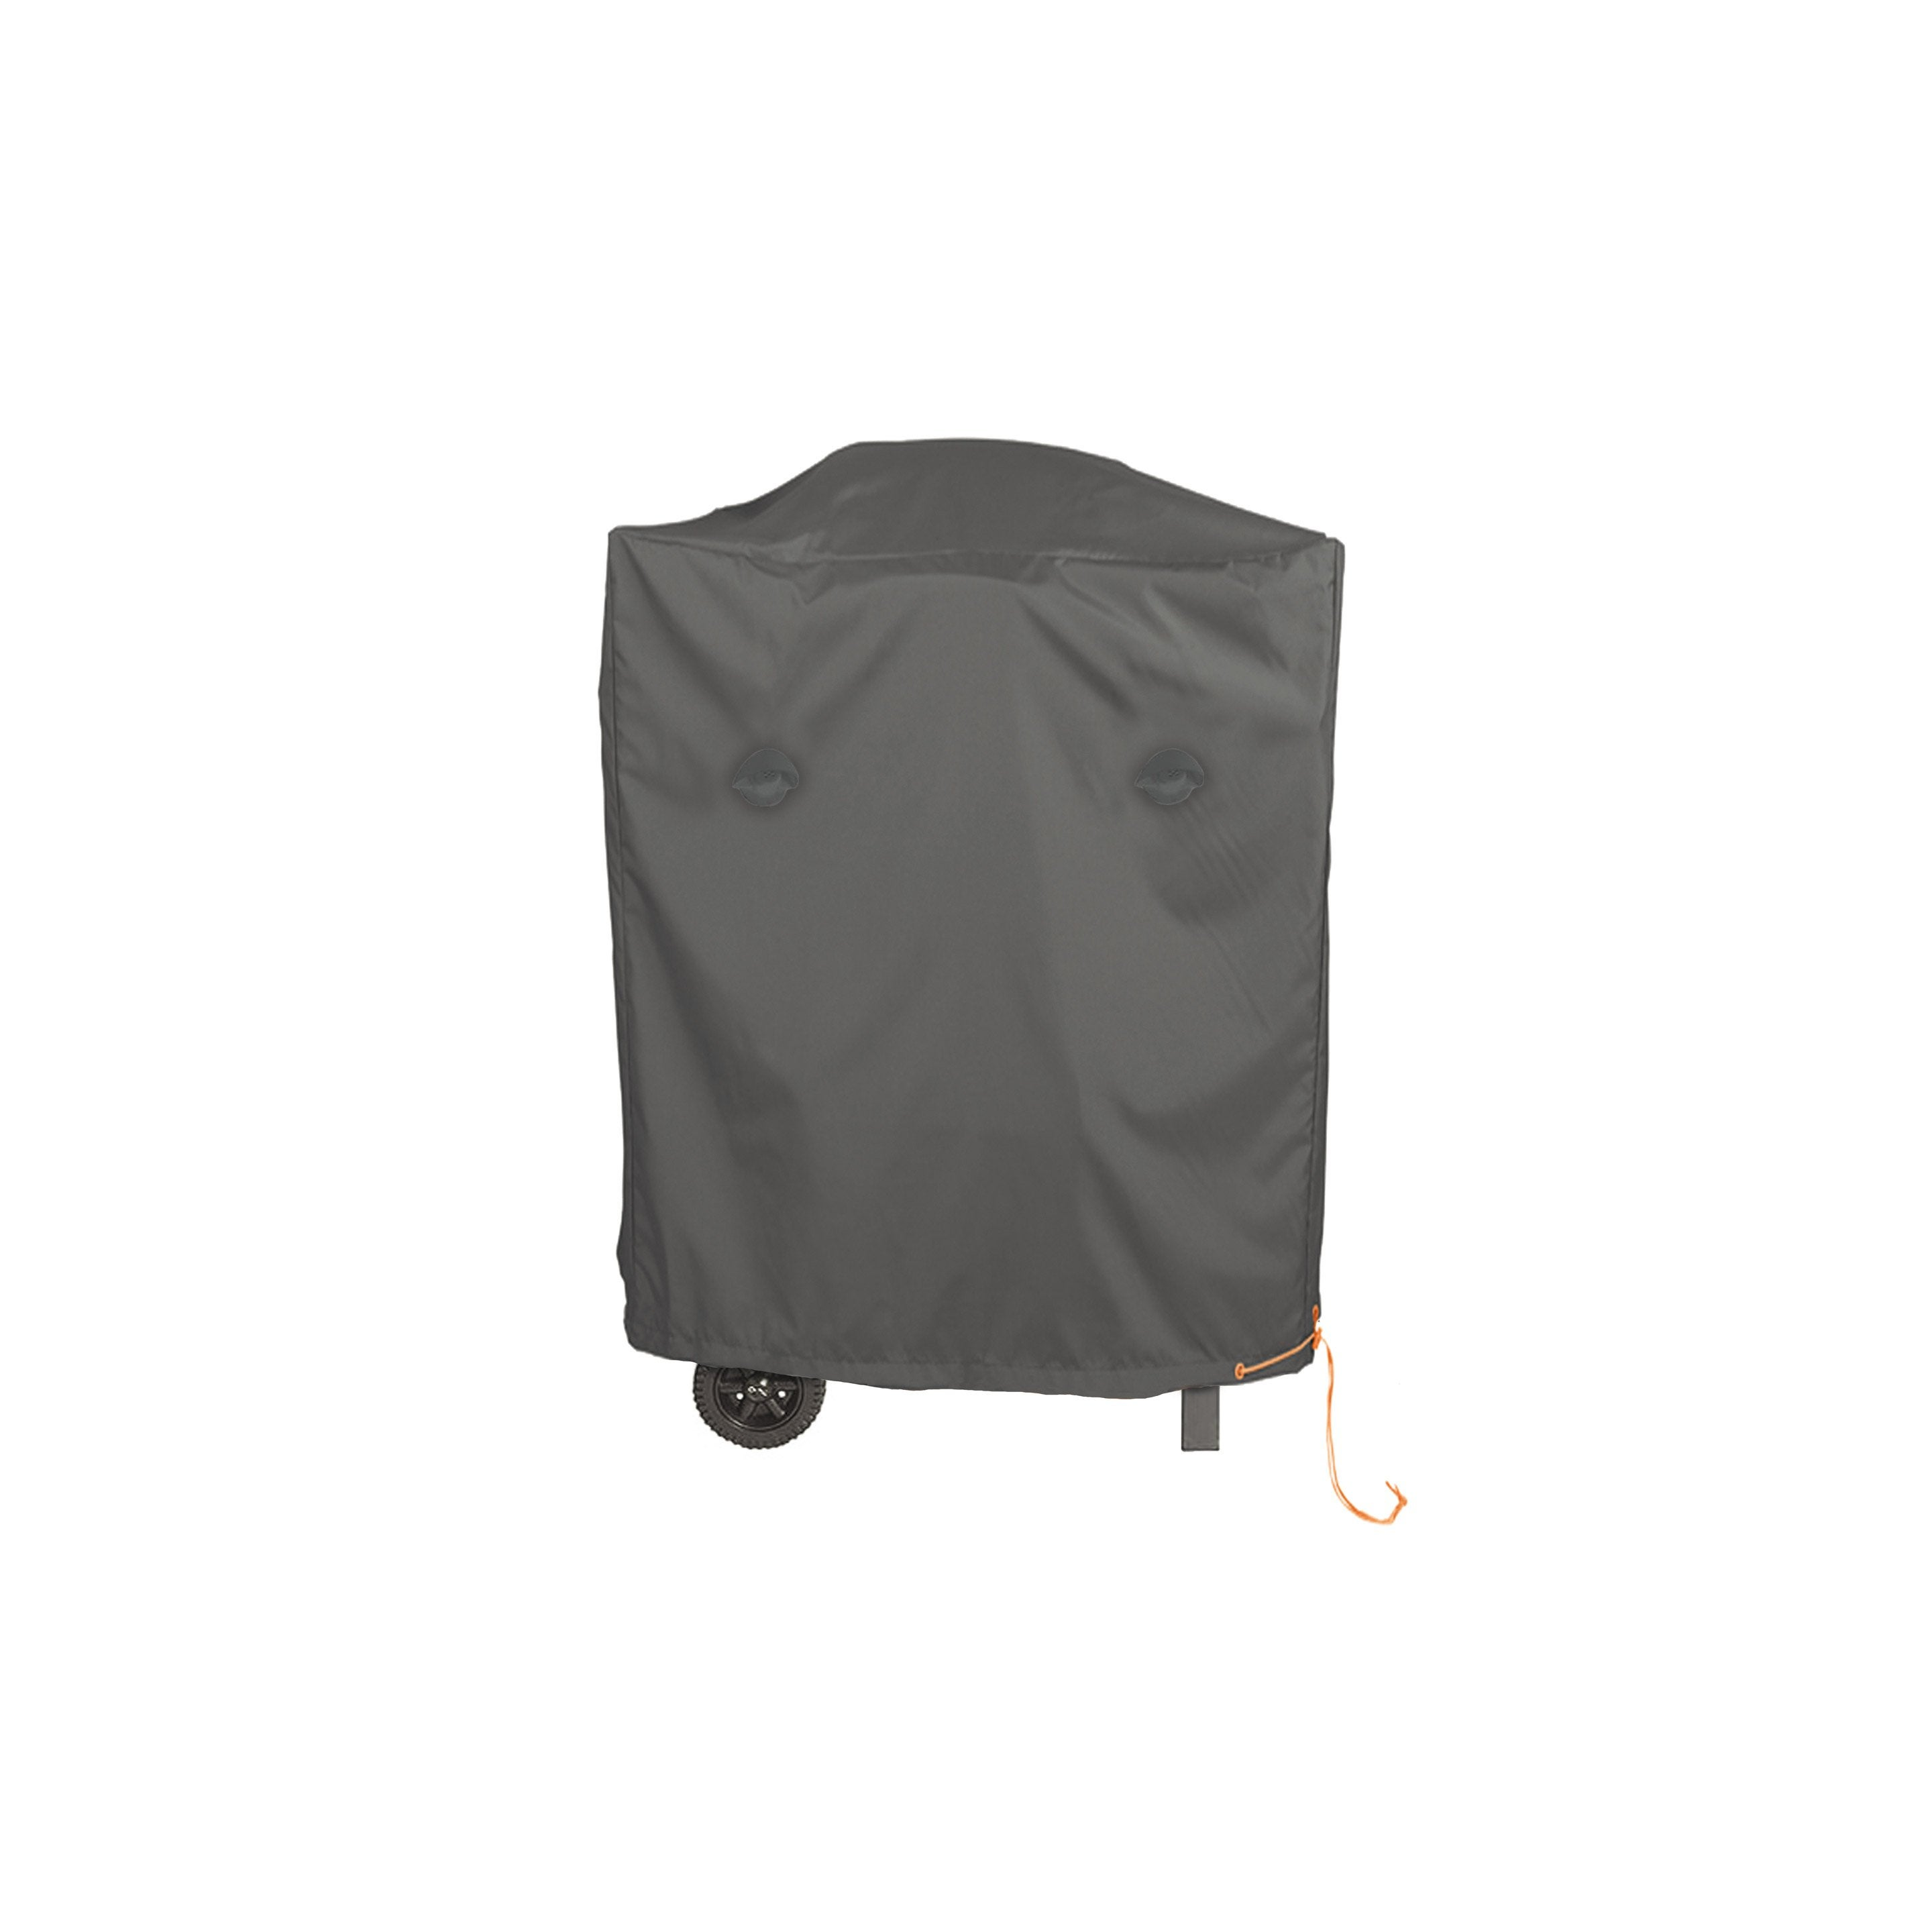 Housse de protection pour barbecue NATERIAL Alton-Kenton, L.83 x l ...